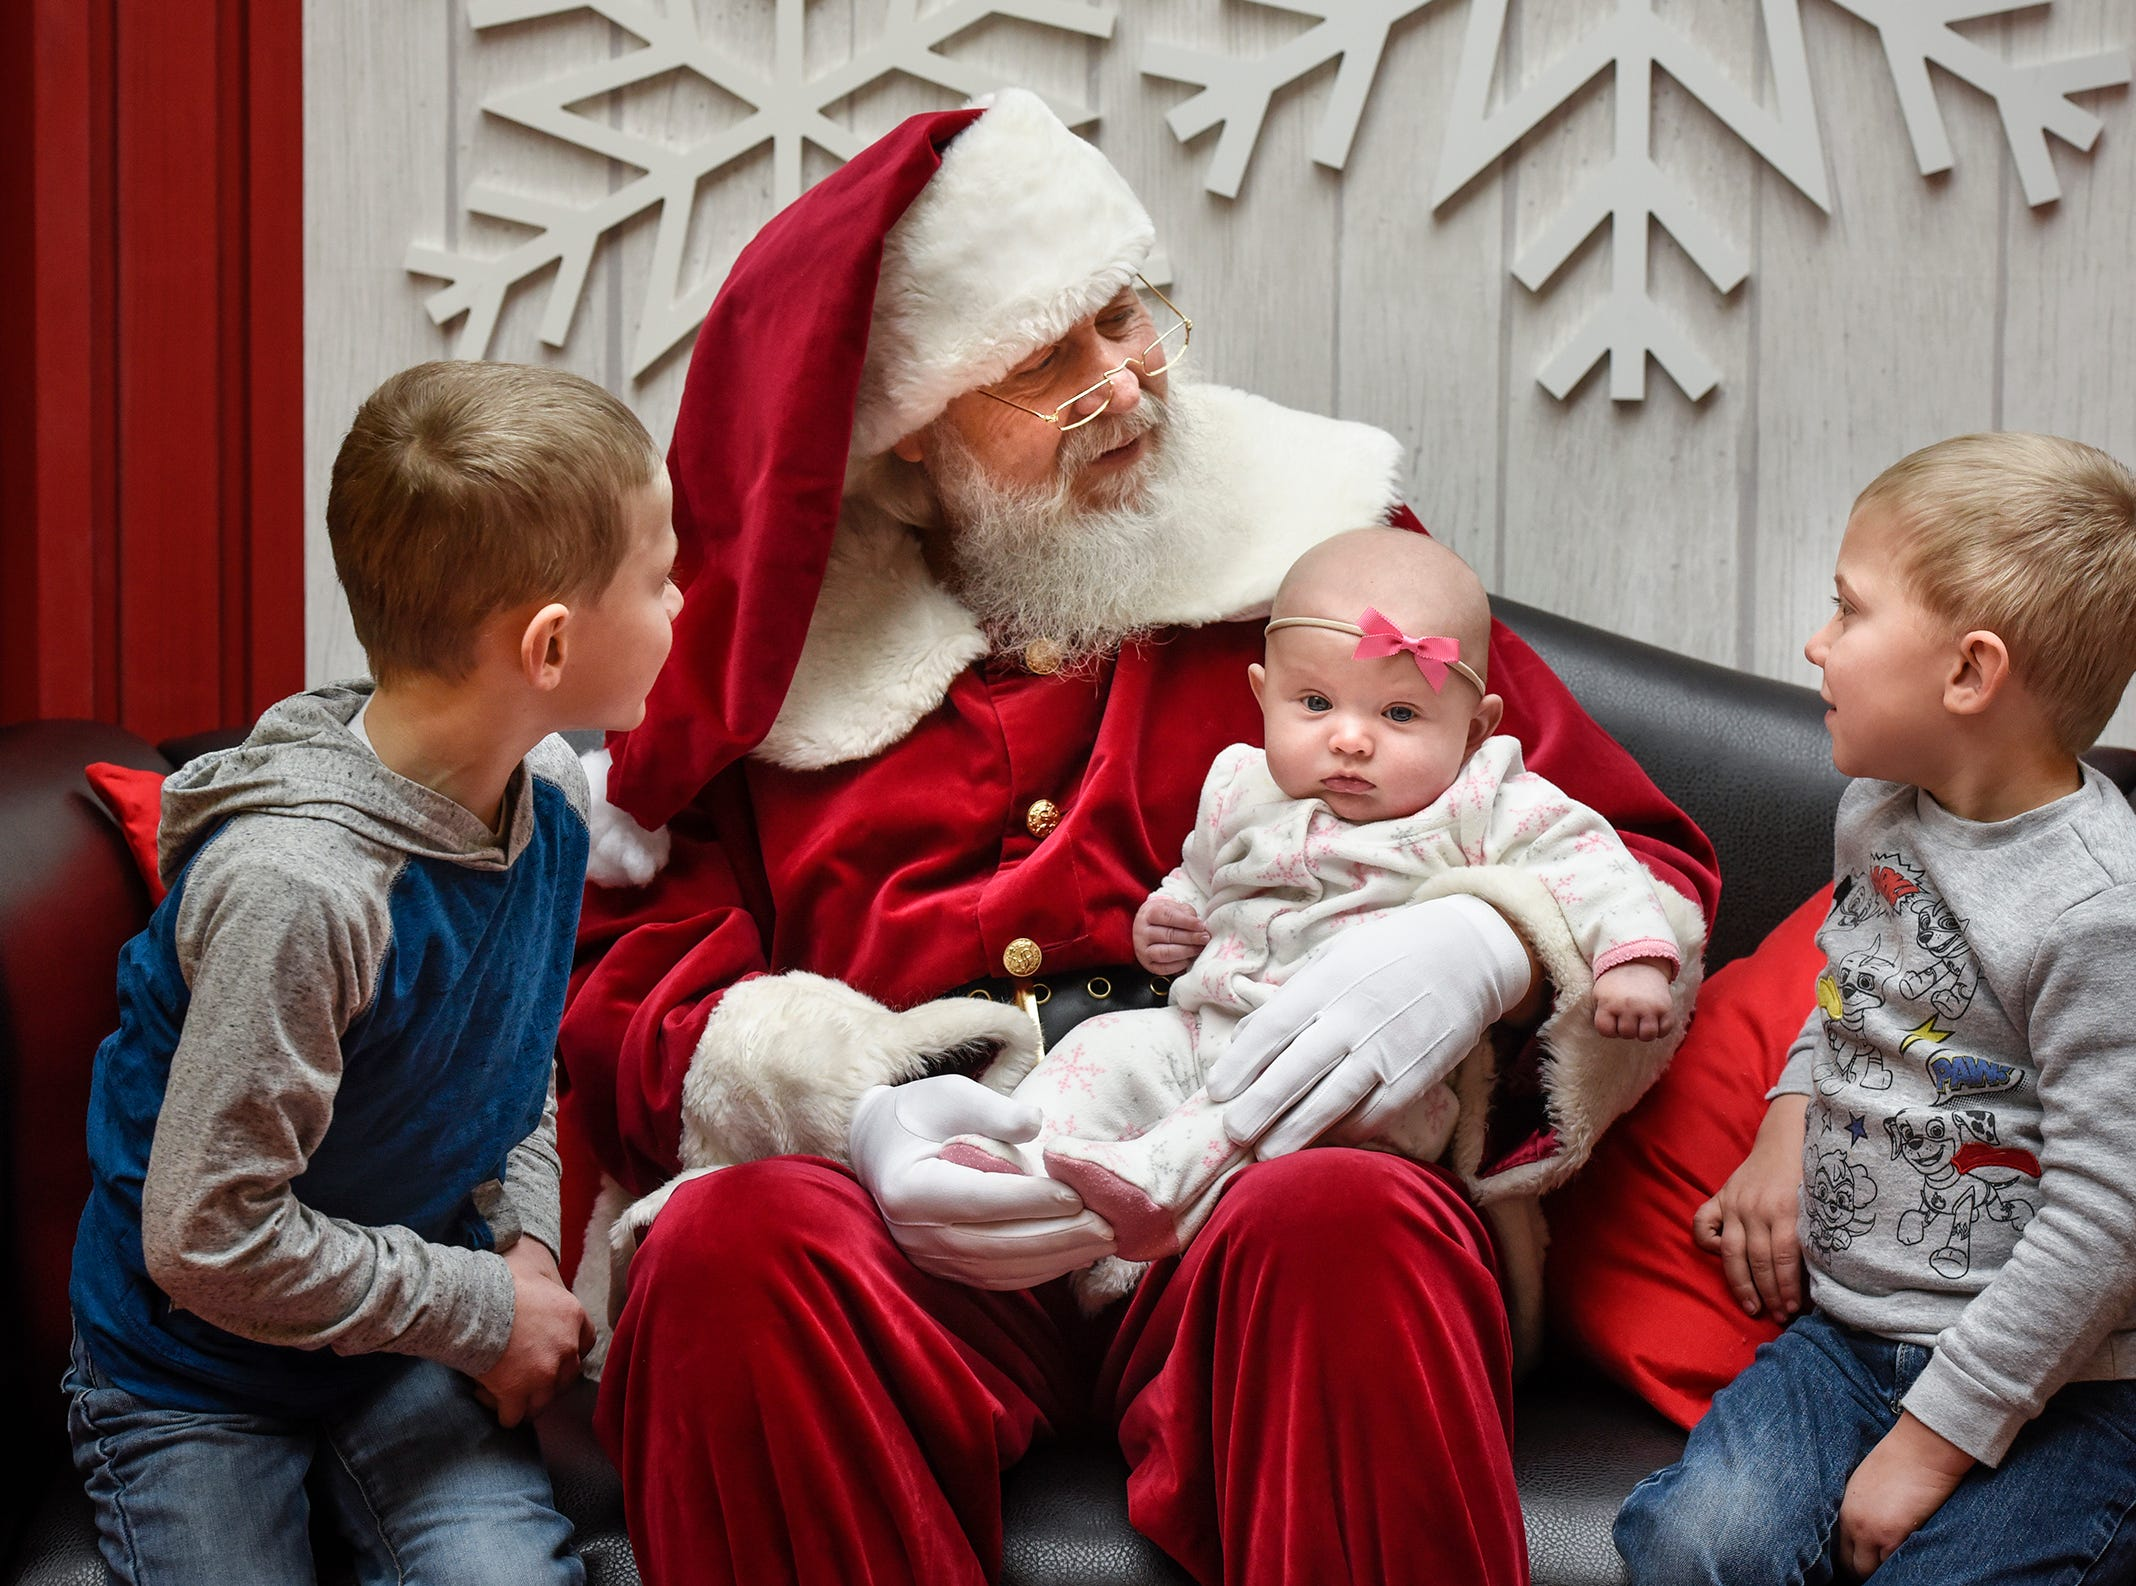 Wyatt, Connor and Delia Roelike talk with Santa Bob Hutton after sharing their Chirstmas wish lists and taking photographs Friday, Nov. 30, at Crossroads Center in St. Cloud.